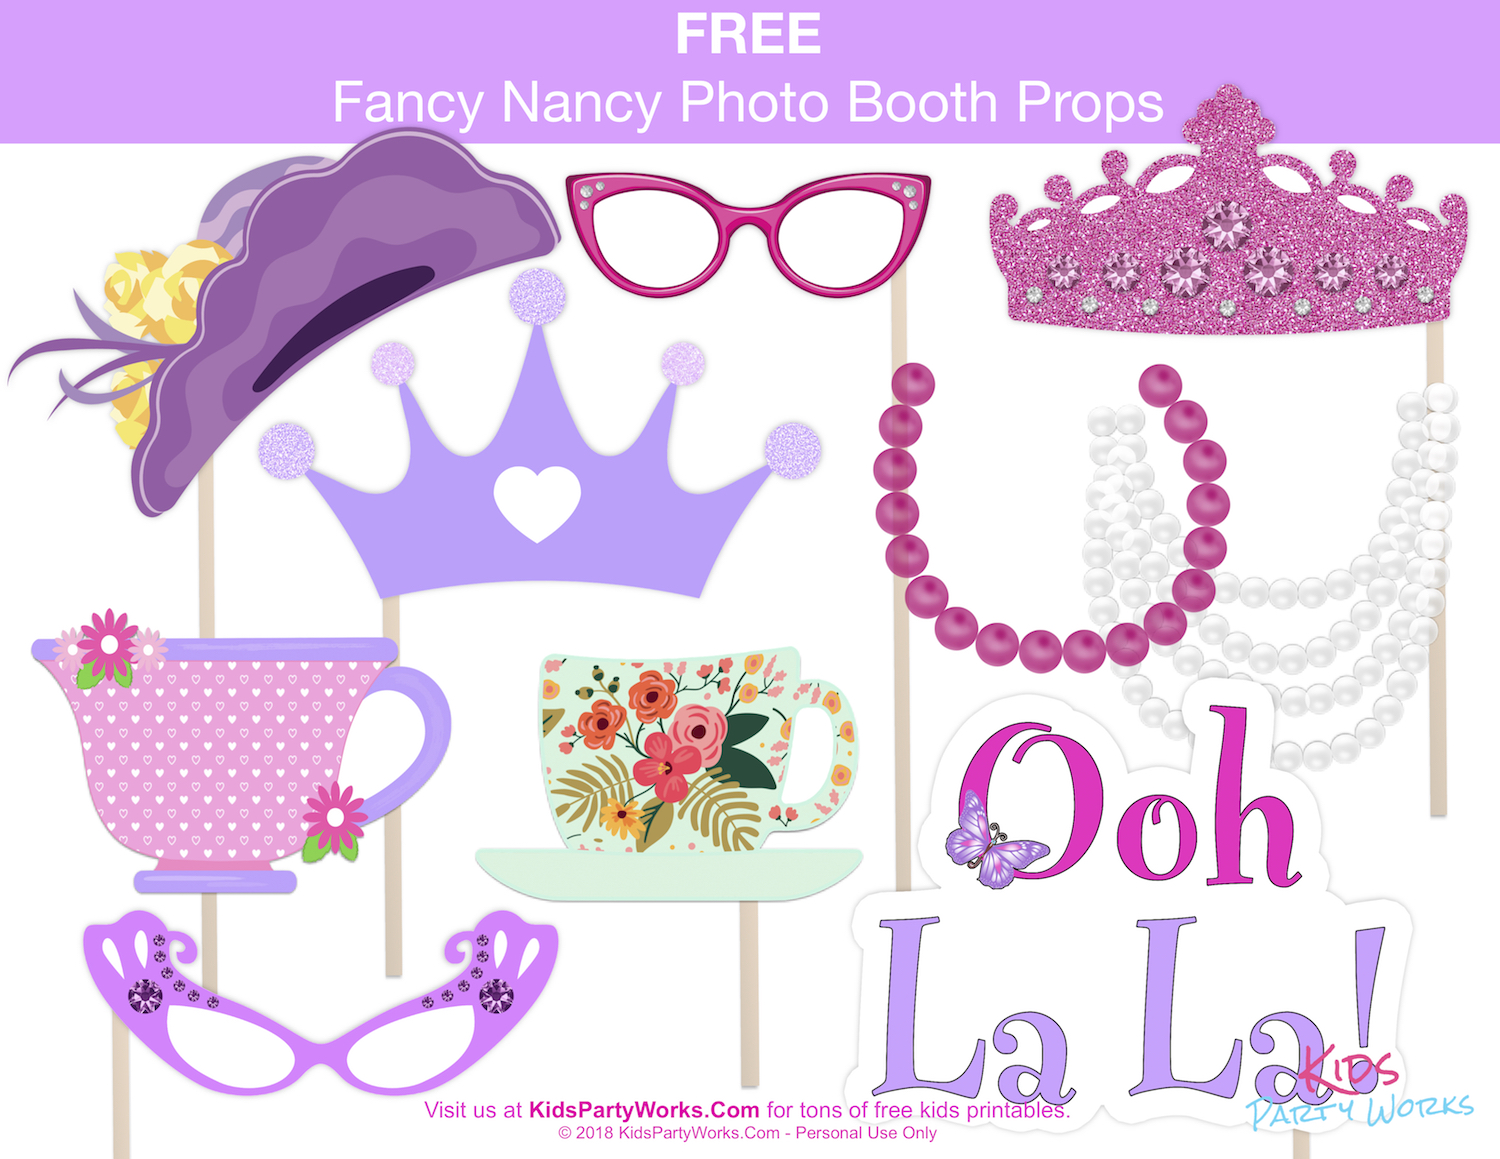 Grab Our Free 10 Piece Fancy Nancy Photo Booth Props Set And Prepare To Transform Your Guests Into Magnifique Fanciness Kids Will Love All The